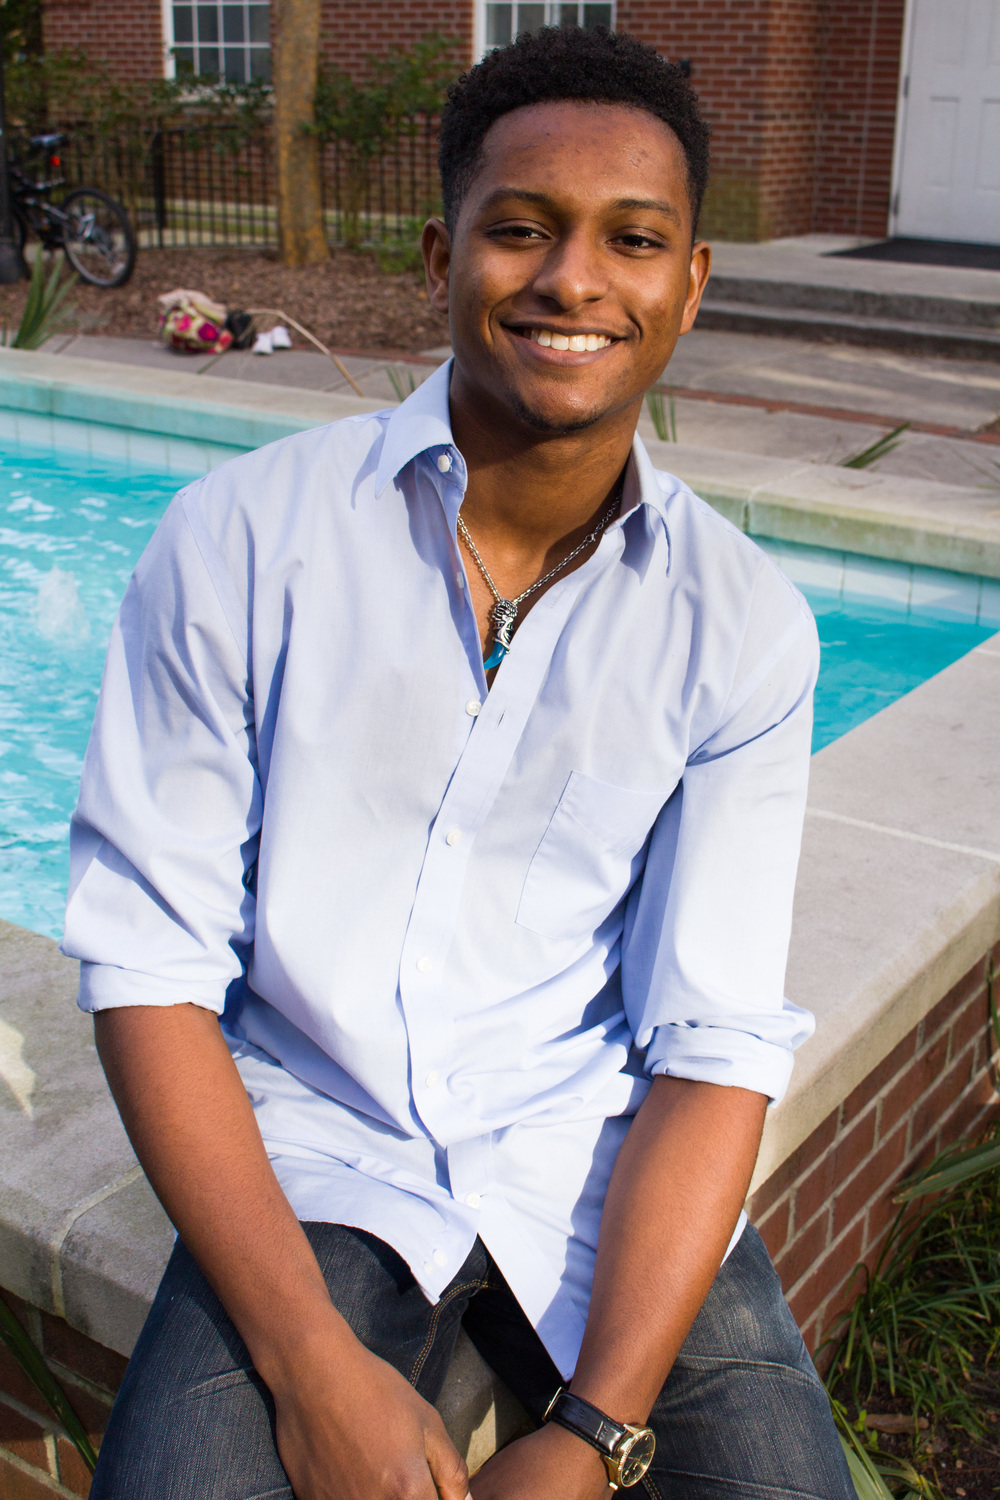 Julian is a junior at UNCW majoring in Marketing Strategy. He realized in high school that Marketing is something he does every day of his life and that every day he enjoys learning more about it and applying more of it to his life! After graduation, Julian plans to continue growing the digital marketing agency he founded while in college, as well as continue exploring all of what this field has to offer (and it is vast).   Julian enjoys playing the piano, reading, and playing basketball.